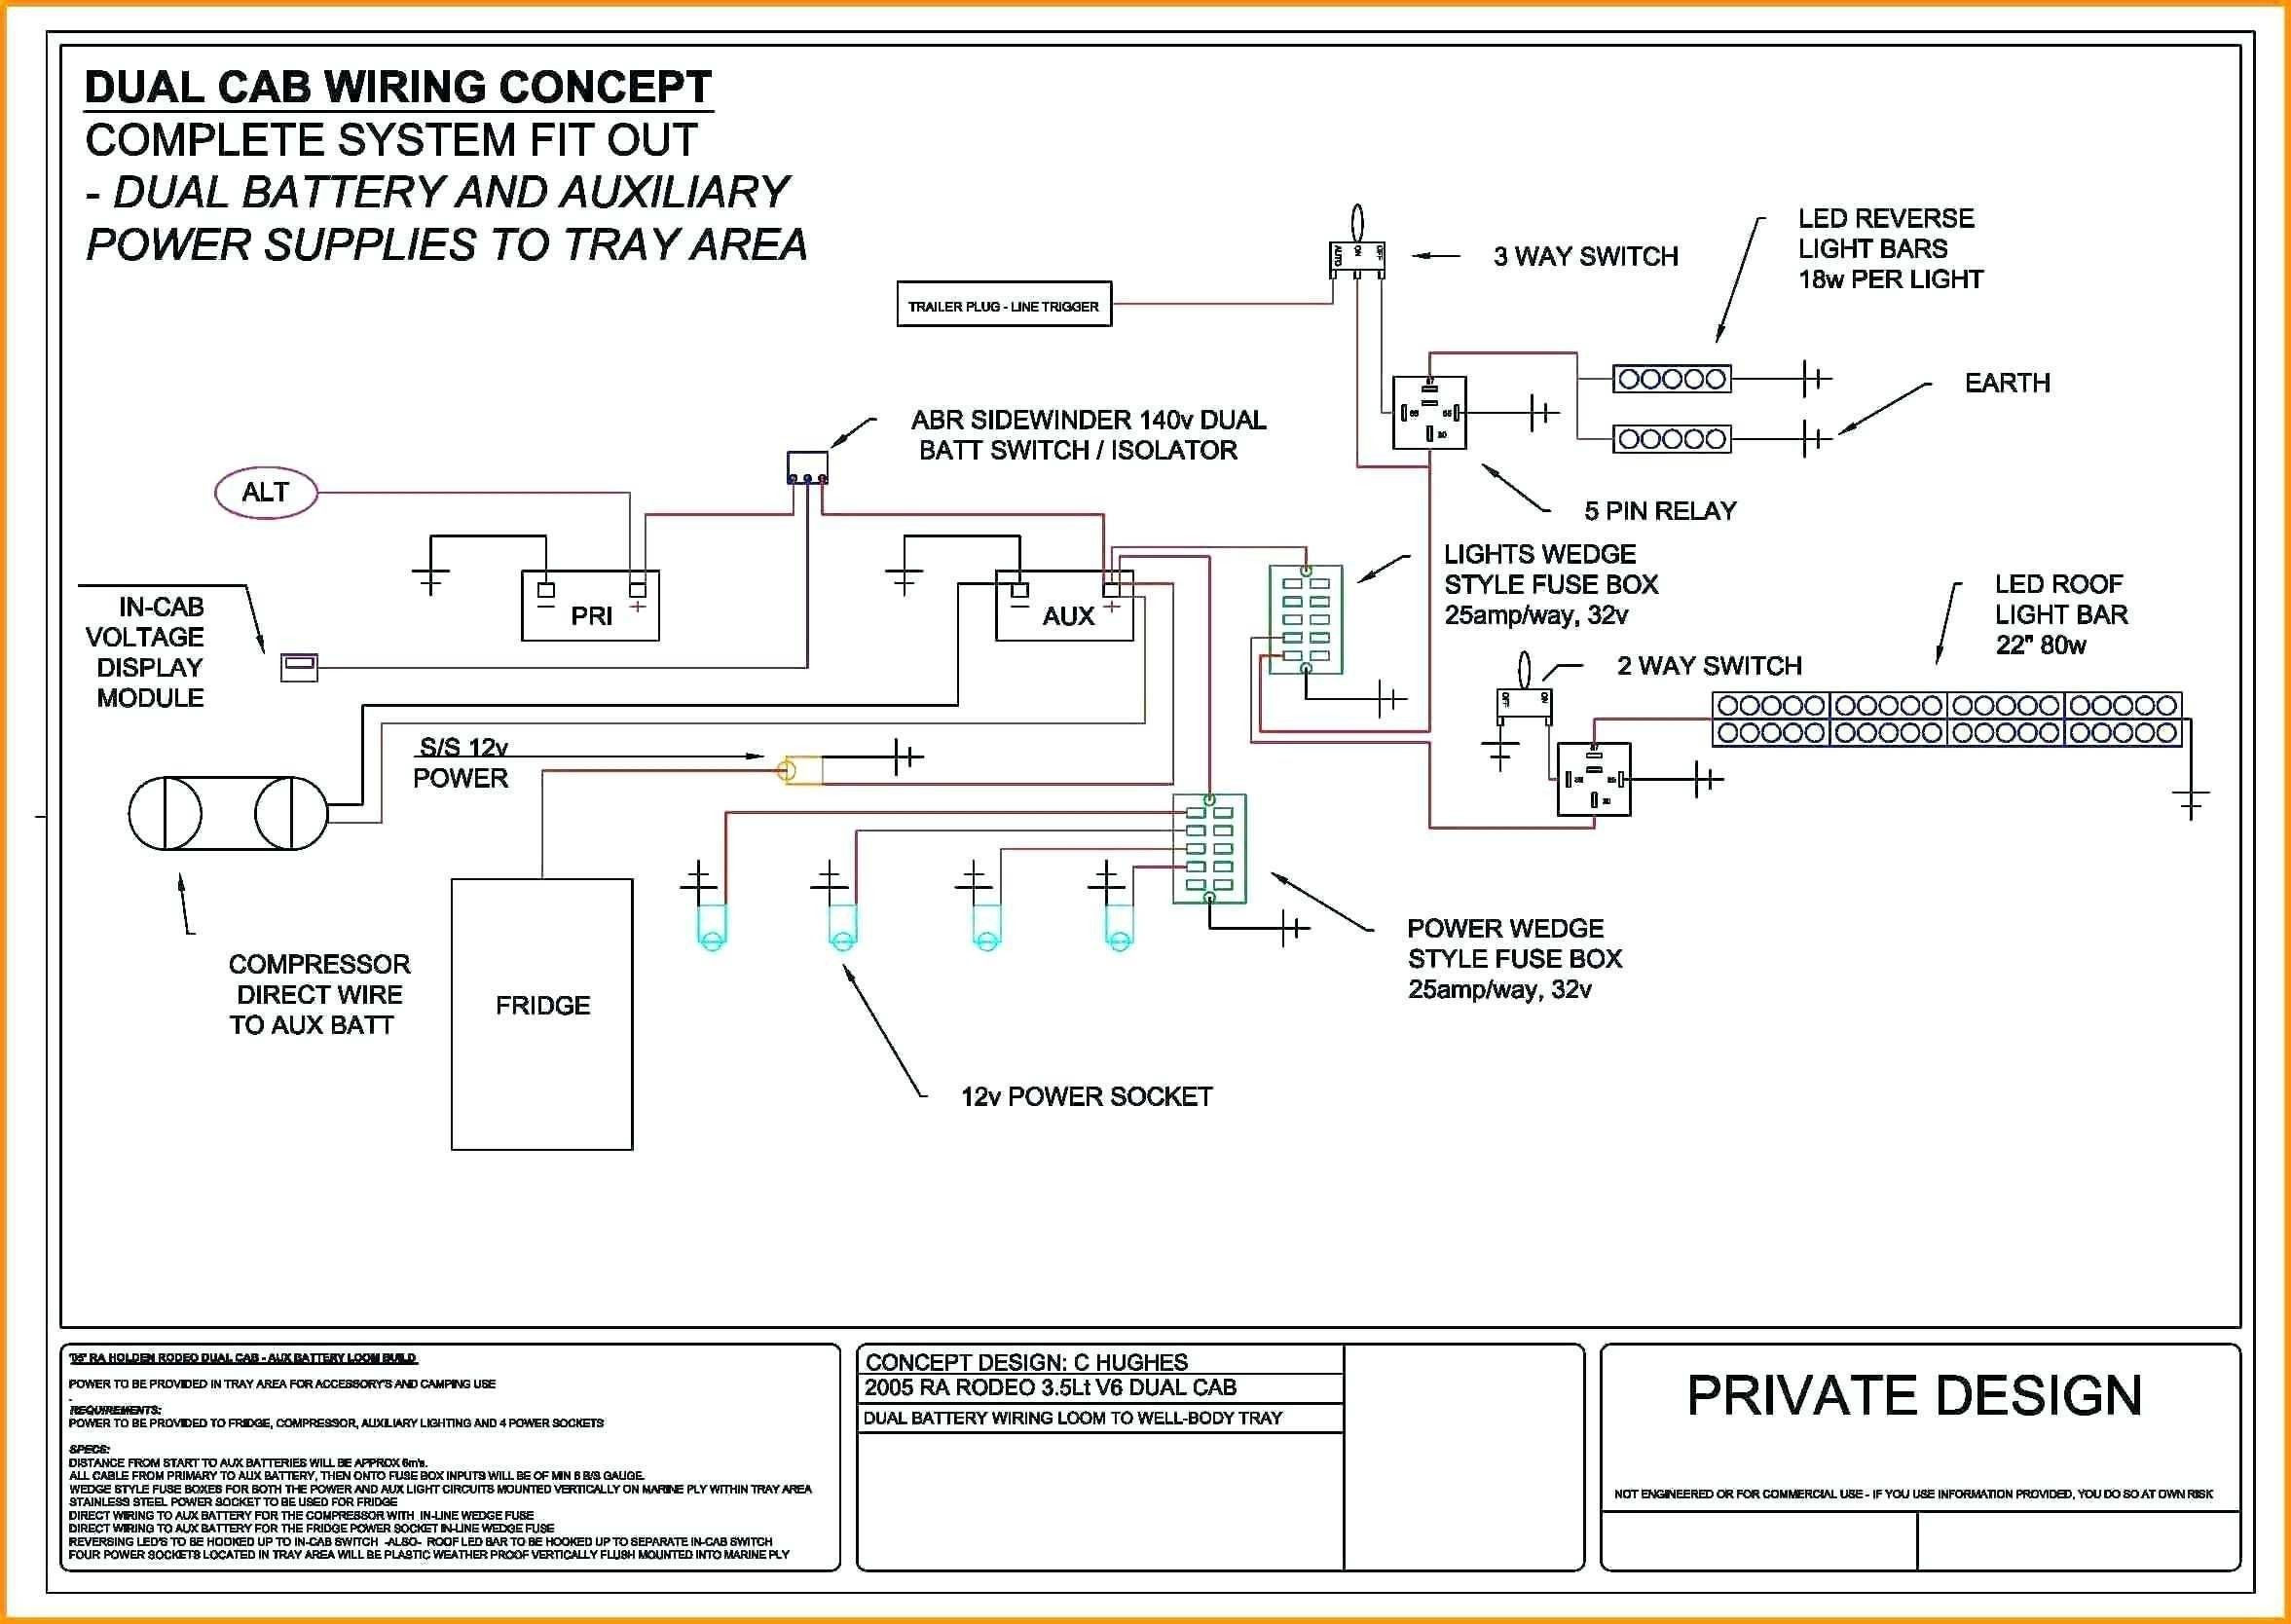 Unique Wiring Diagram Air Conditioning Compressor